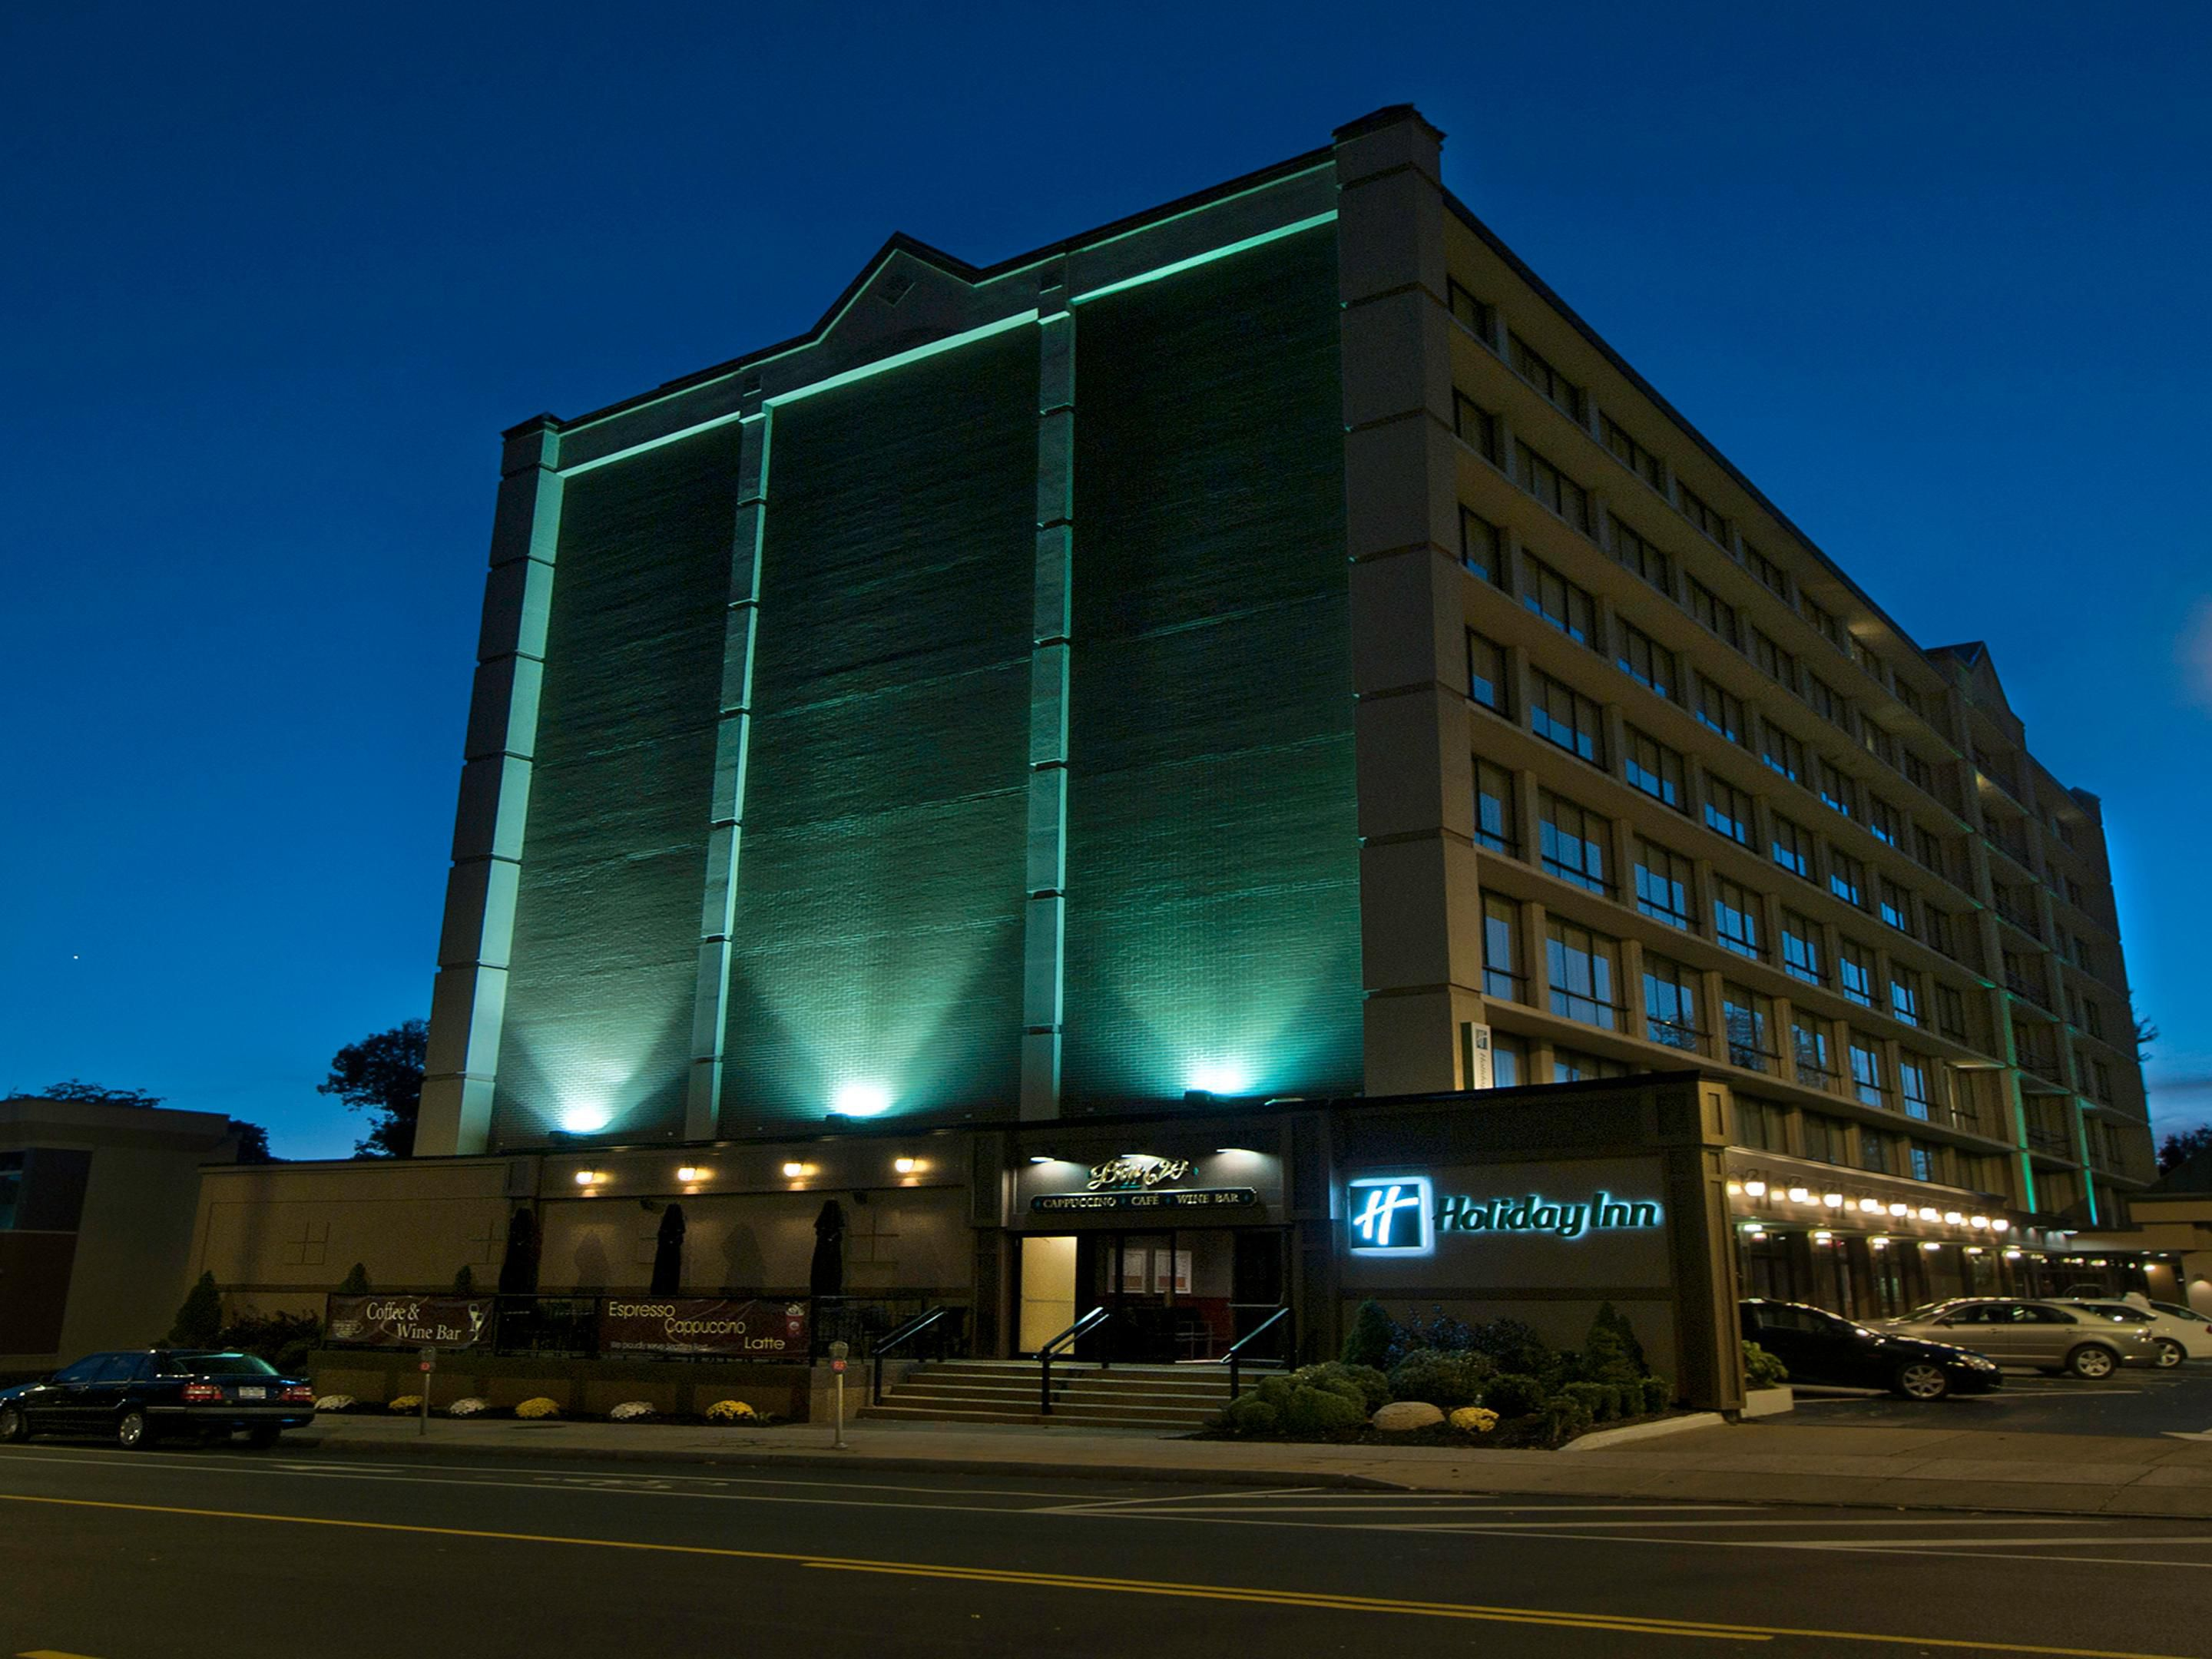 Welcome to Holiday Inn Buffalo Downtown overlooking Delaware Ave.